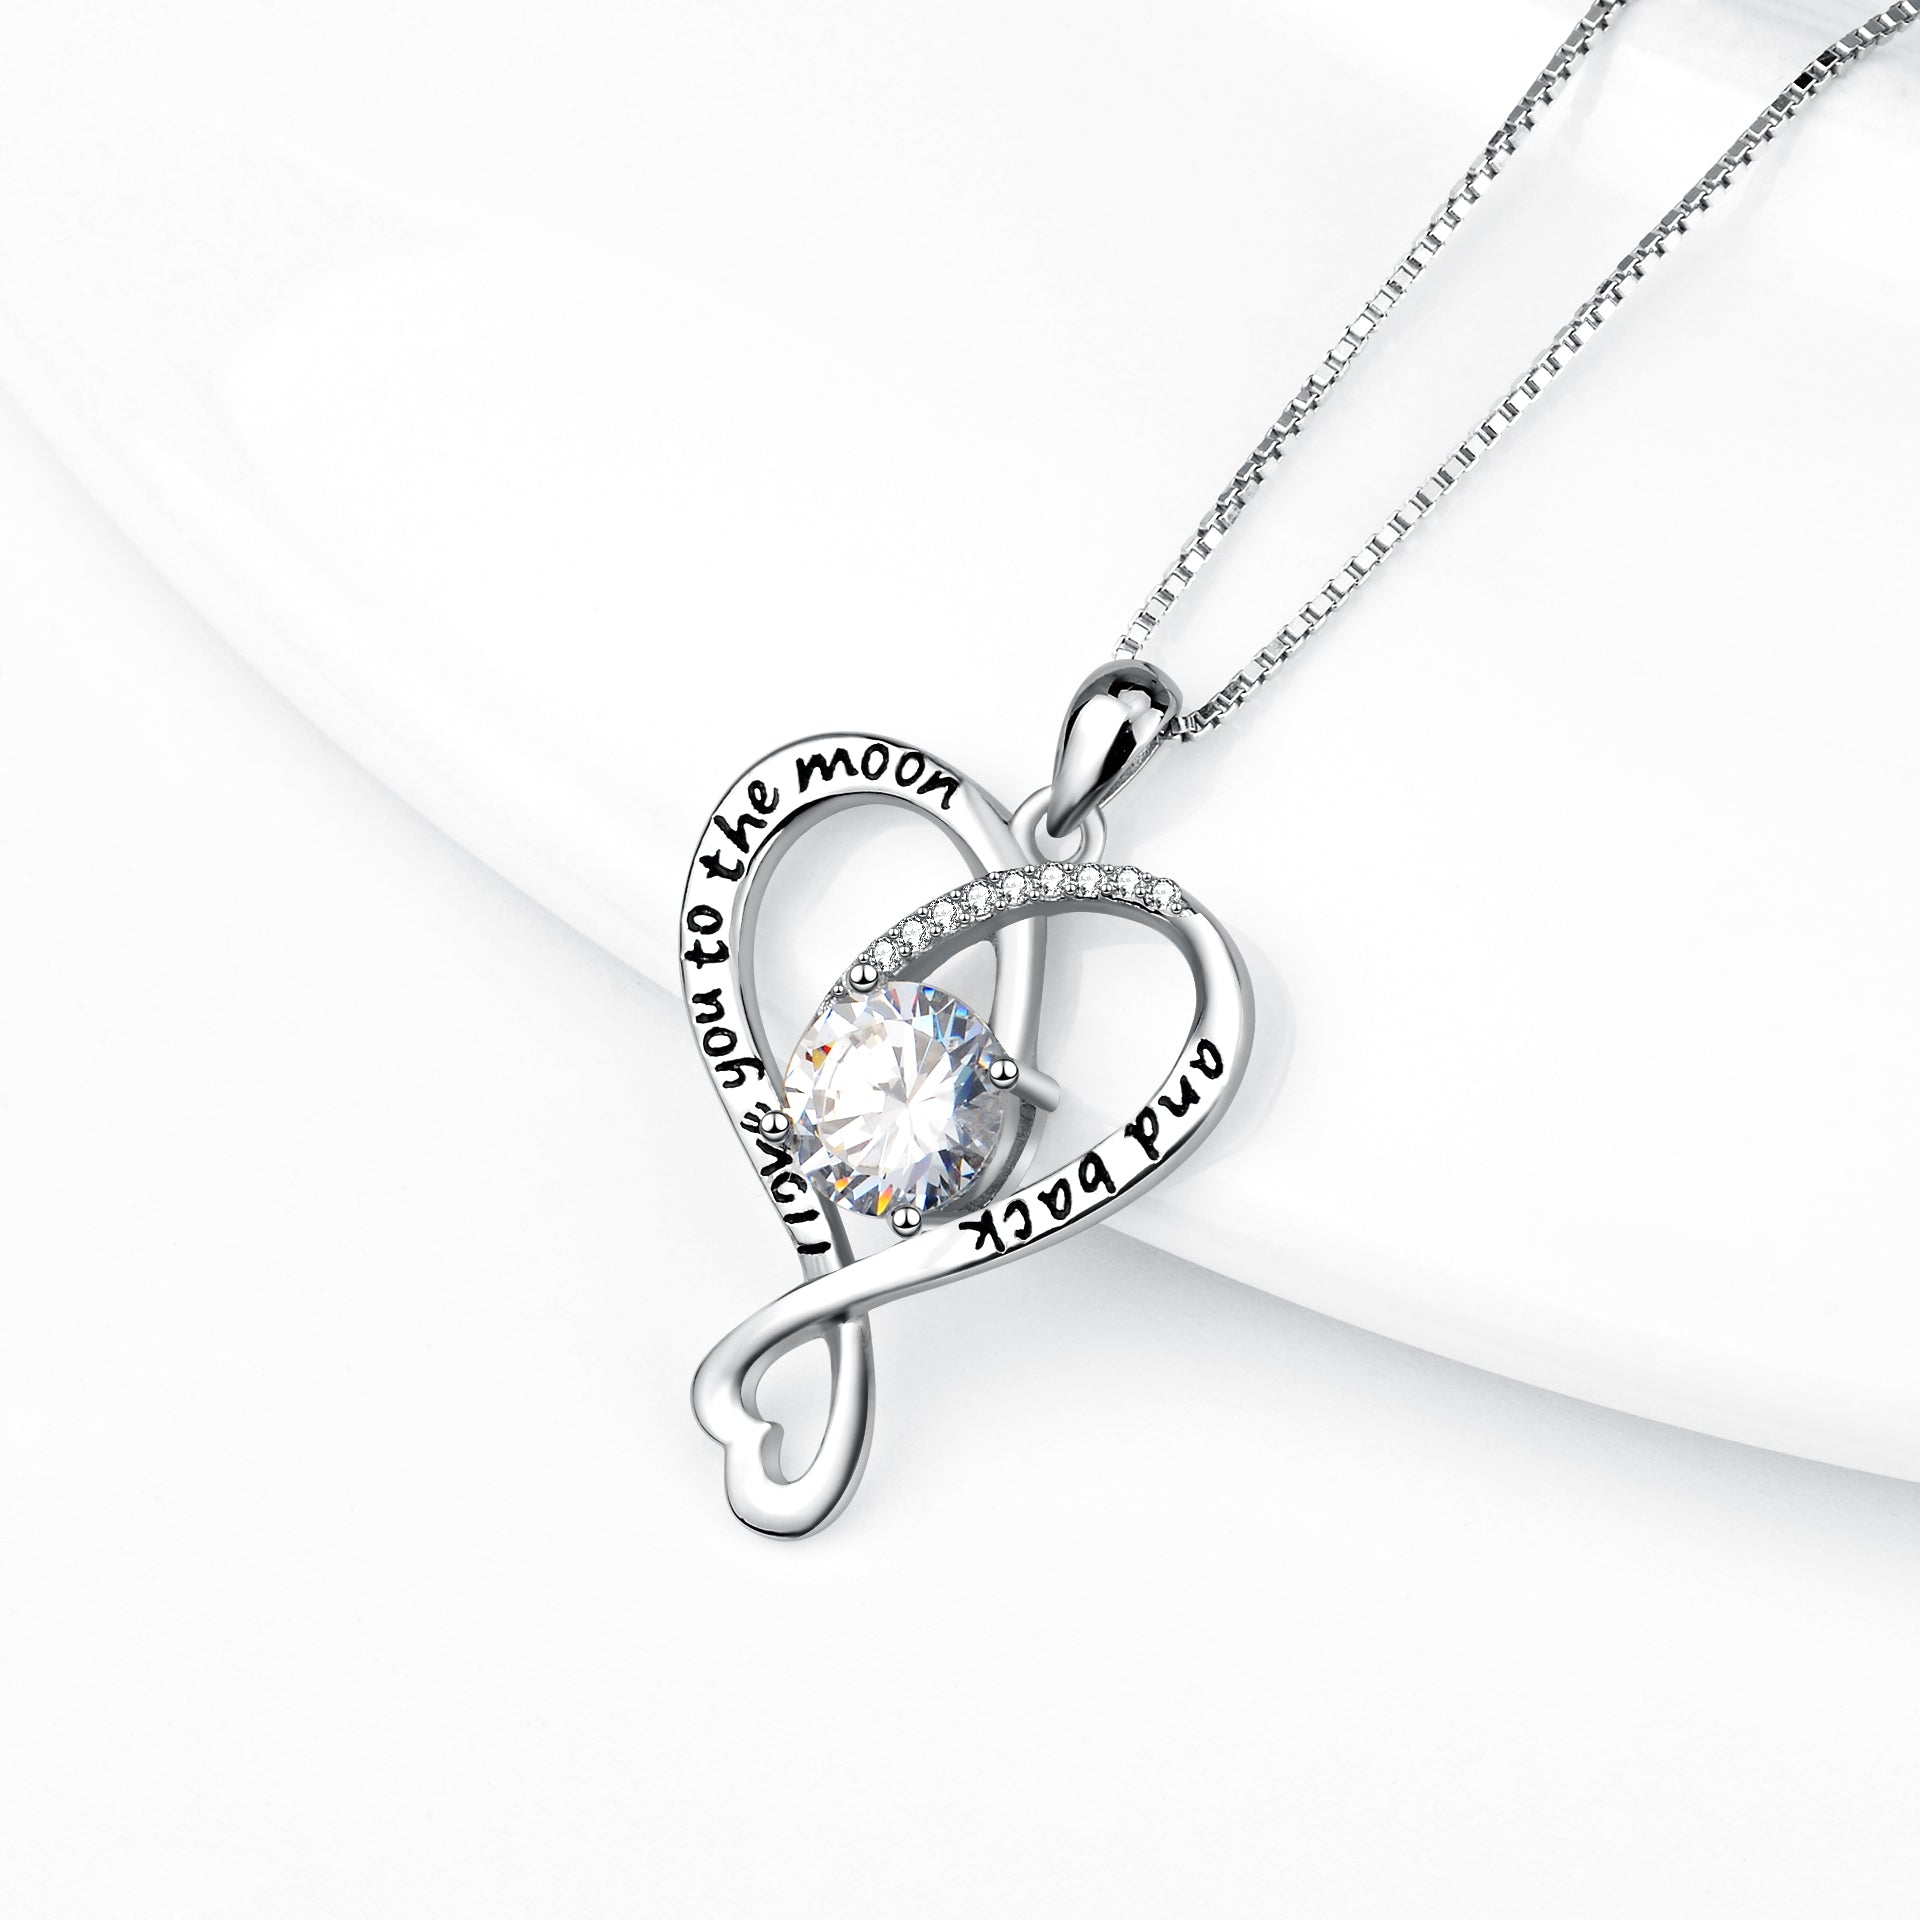 Message Necklace Fashion S925 Silver White Cubic Zircon Double Heart Necklace